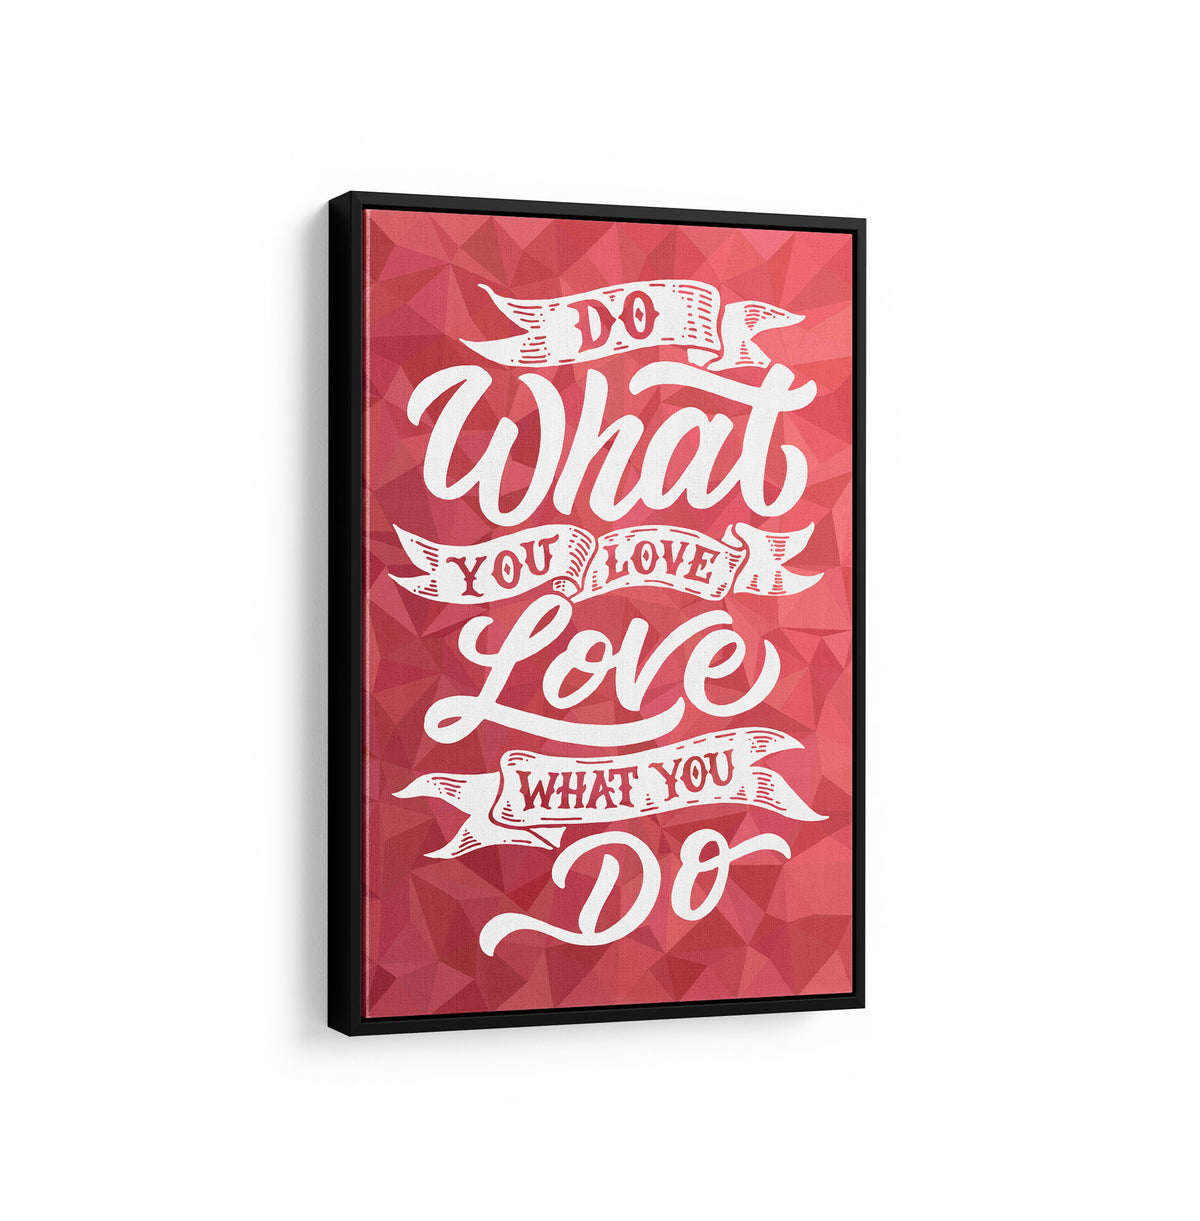 Artiful Do What You Love motivational Canvas Wall art, framed